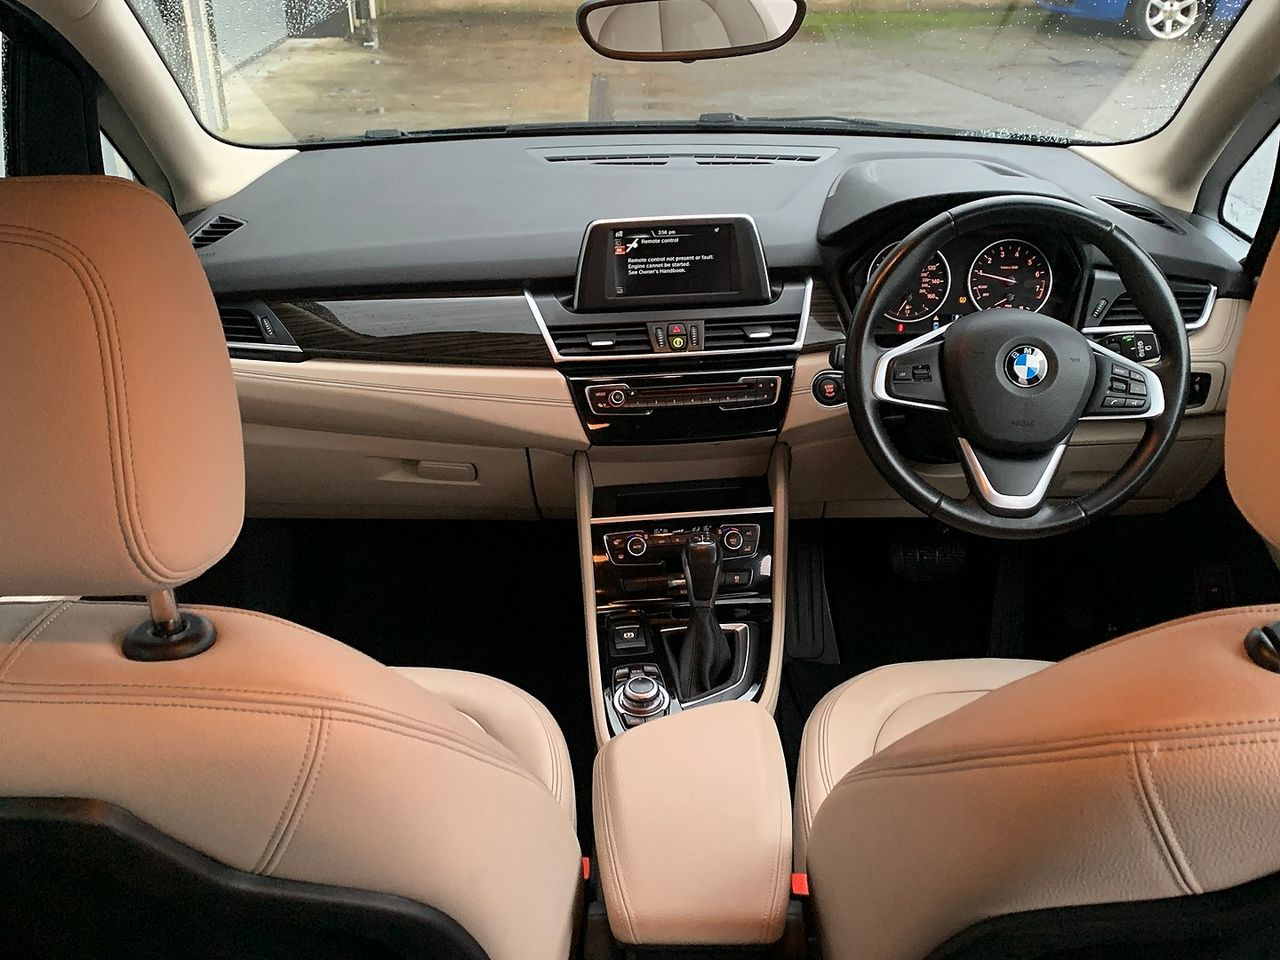 2015 BMW 2 Series Active Tourer 218i Luxury - Picture 9 of 9